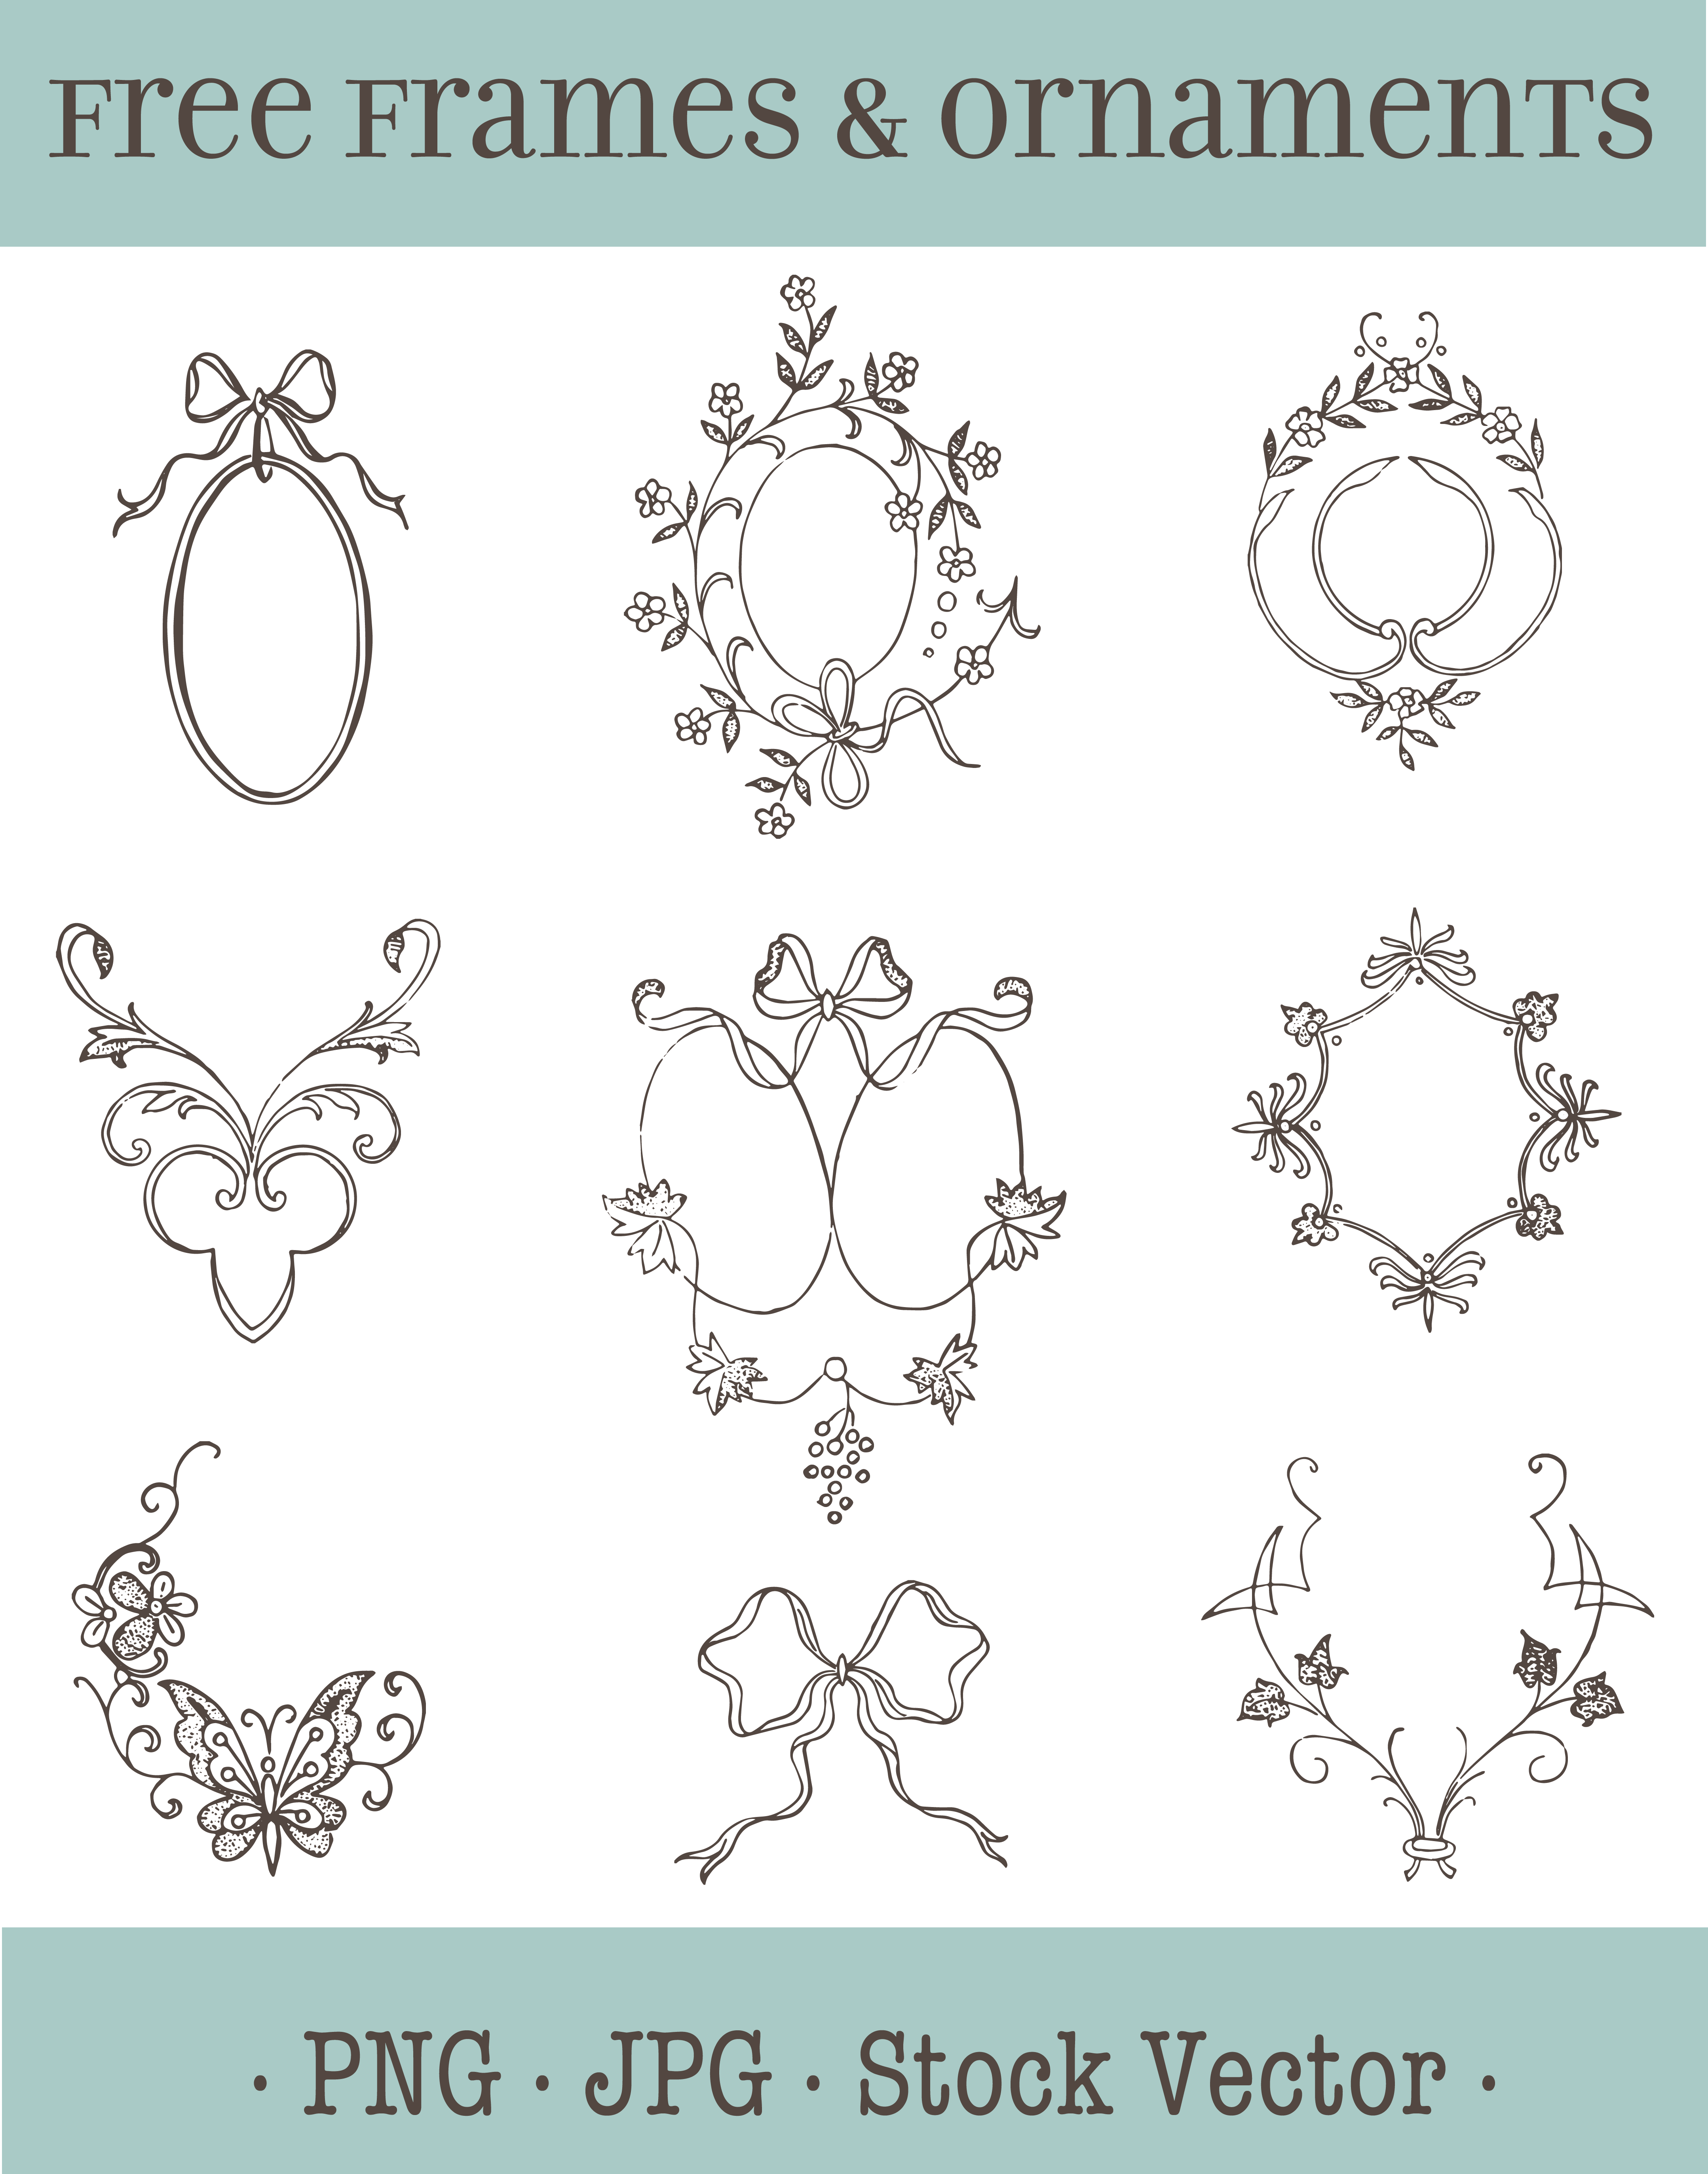 Wedding ornaments - This Clip Art Sheet Is Comprised Of Several Vintage Frames And Ornaments That Can Be Used For Making Wedding Invitations And Incorporated Into Hand Made